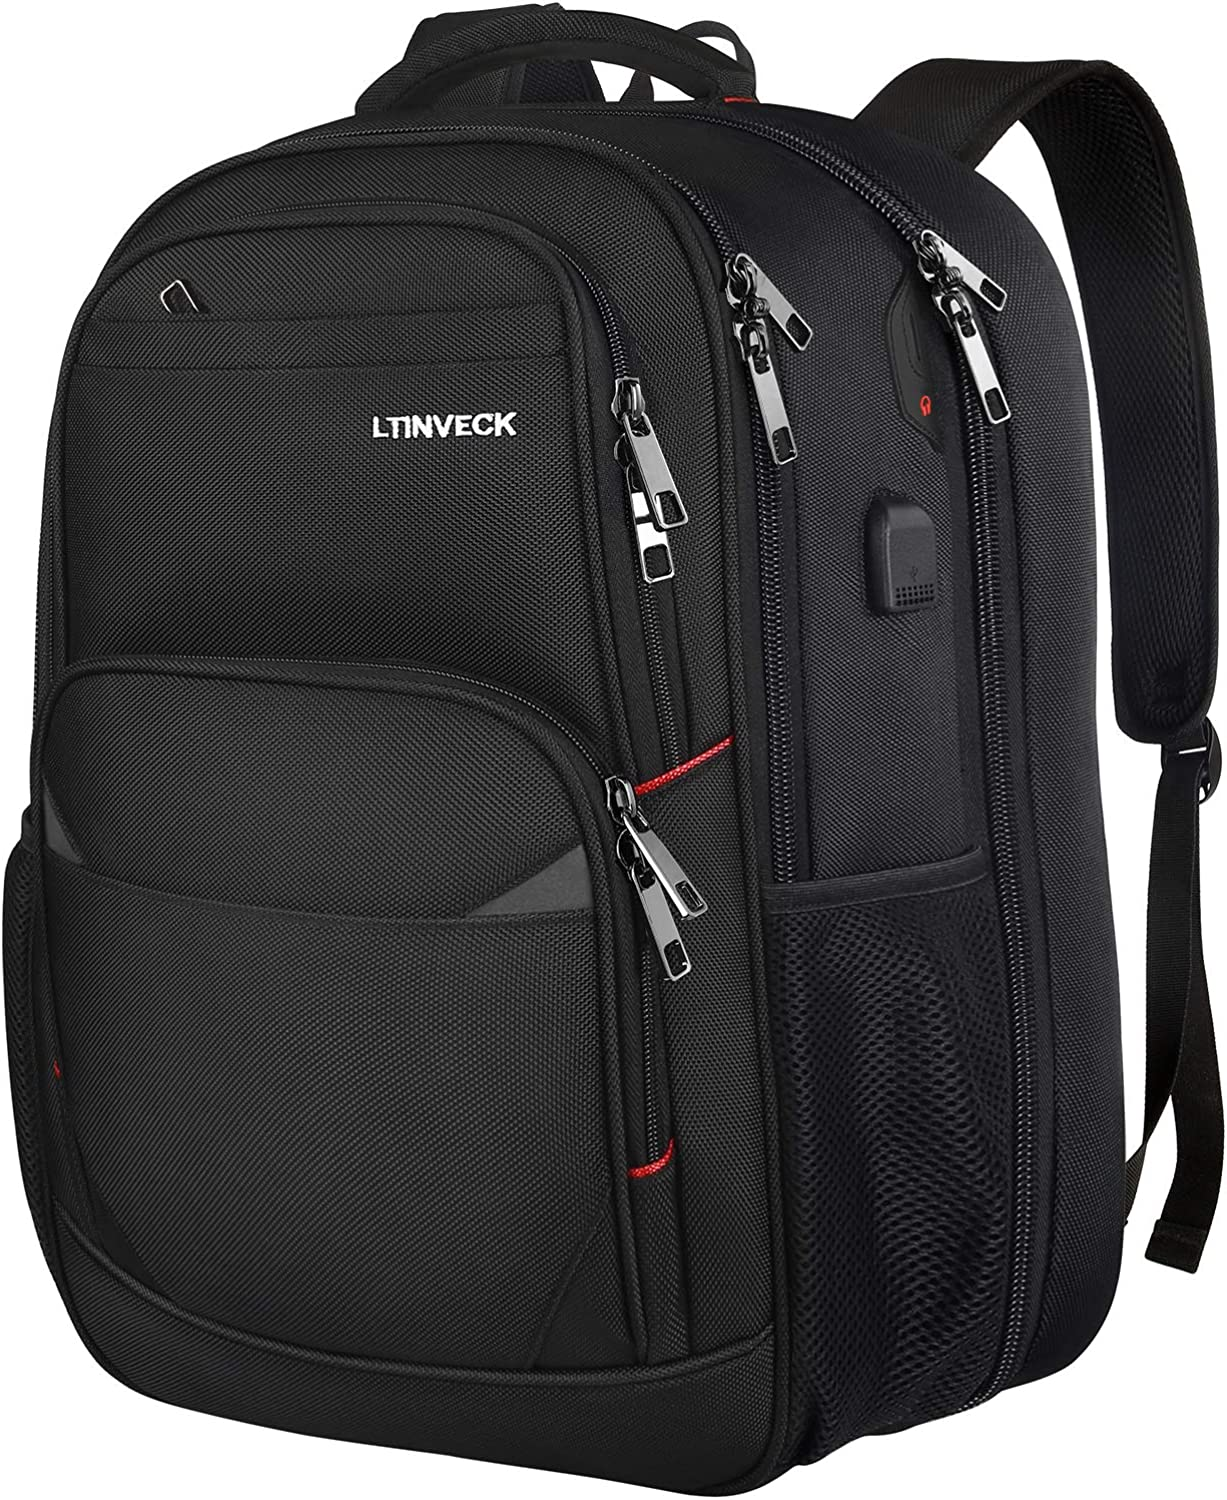 Travel Laptop Backpack,17.3 Inch Extra Large Capacity College School Bookbags with USB Charging Port,TSA Friendly Business RFID Anti Theft Pocket,Durable Heavy Duty Big Computer Backpack for Men Black